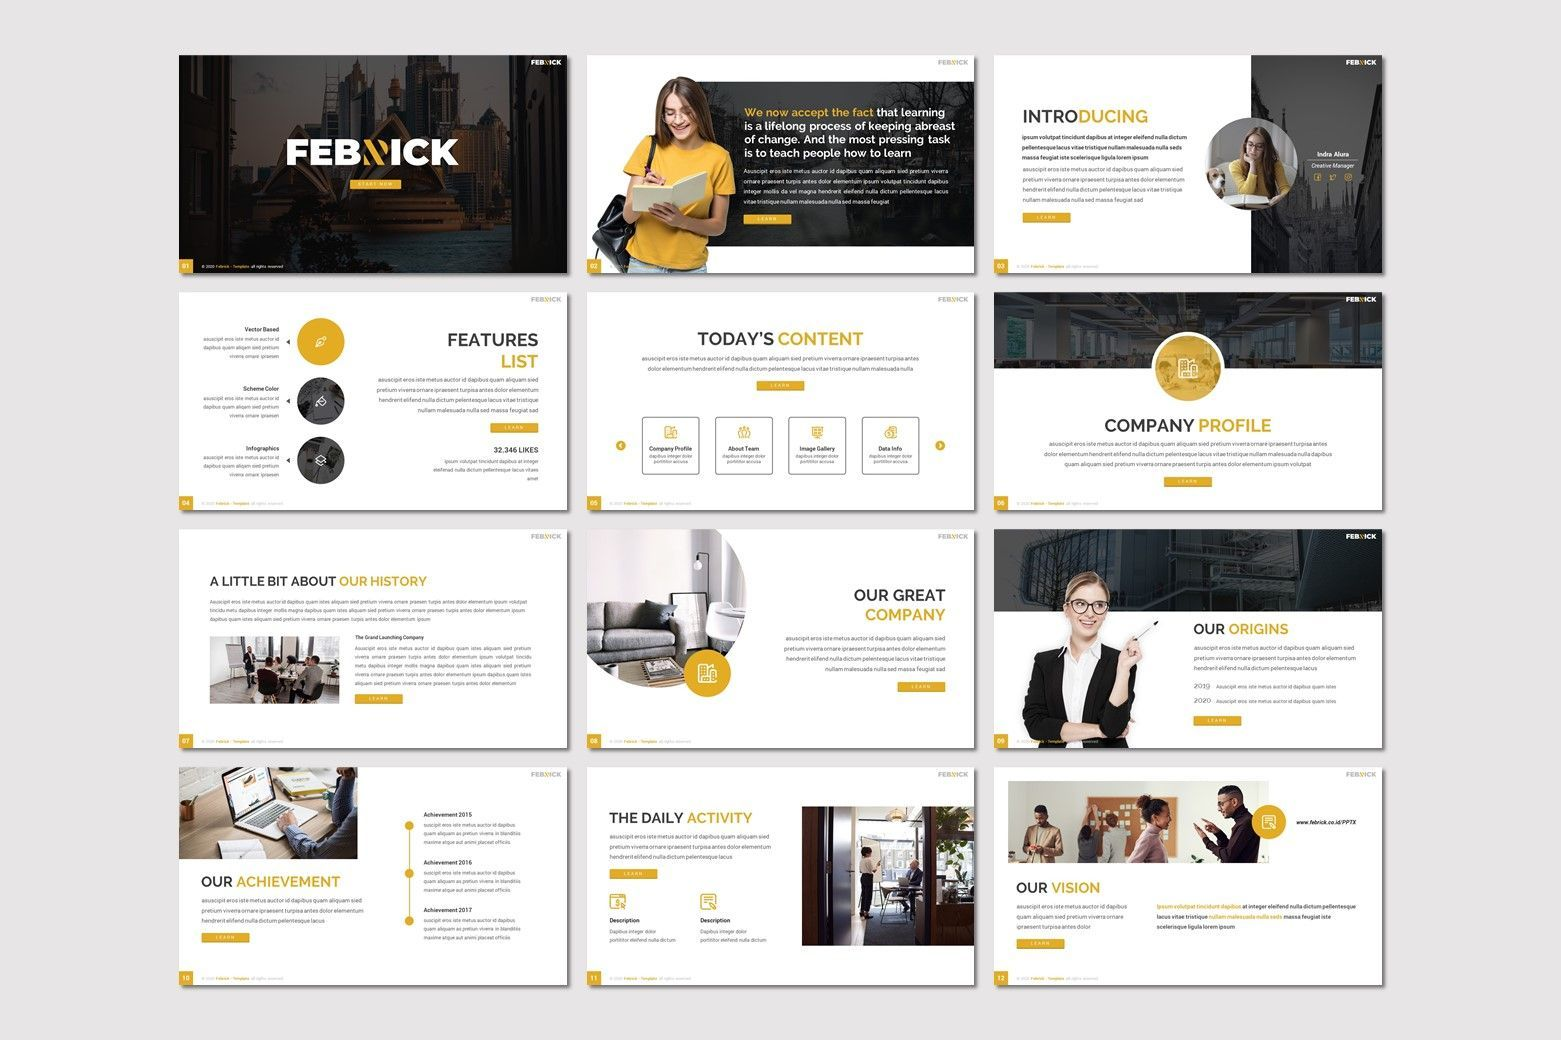 Febrick - Powerpoint Template, Slide 2, 08031, Presentation Templates — PoweredTemplate.com